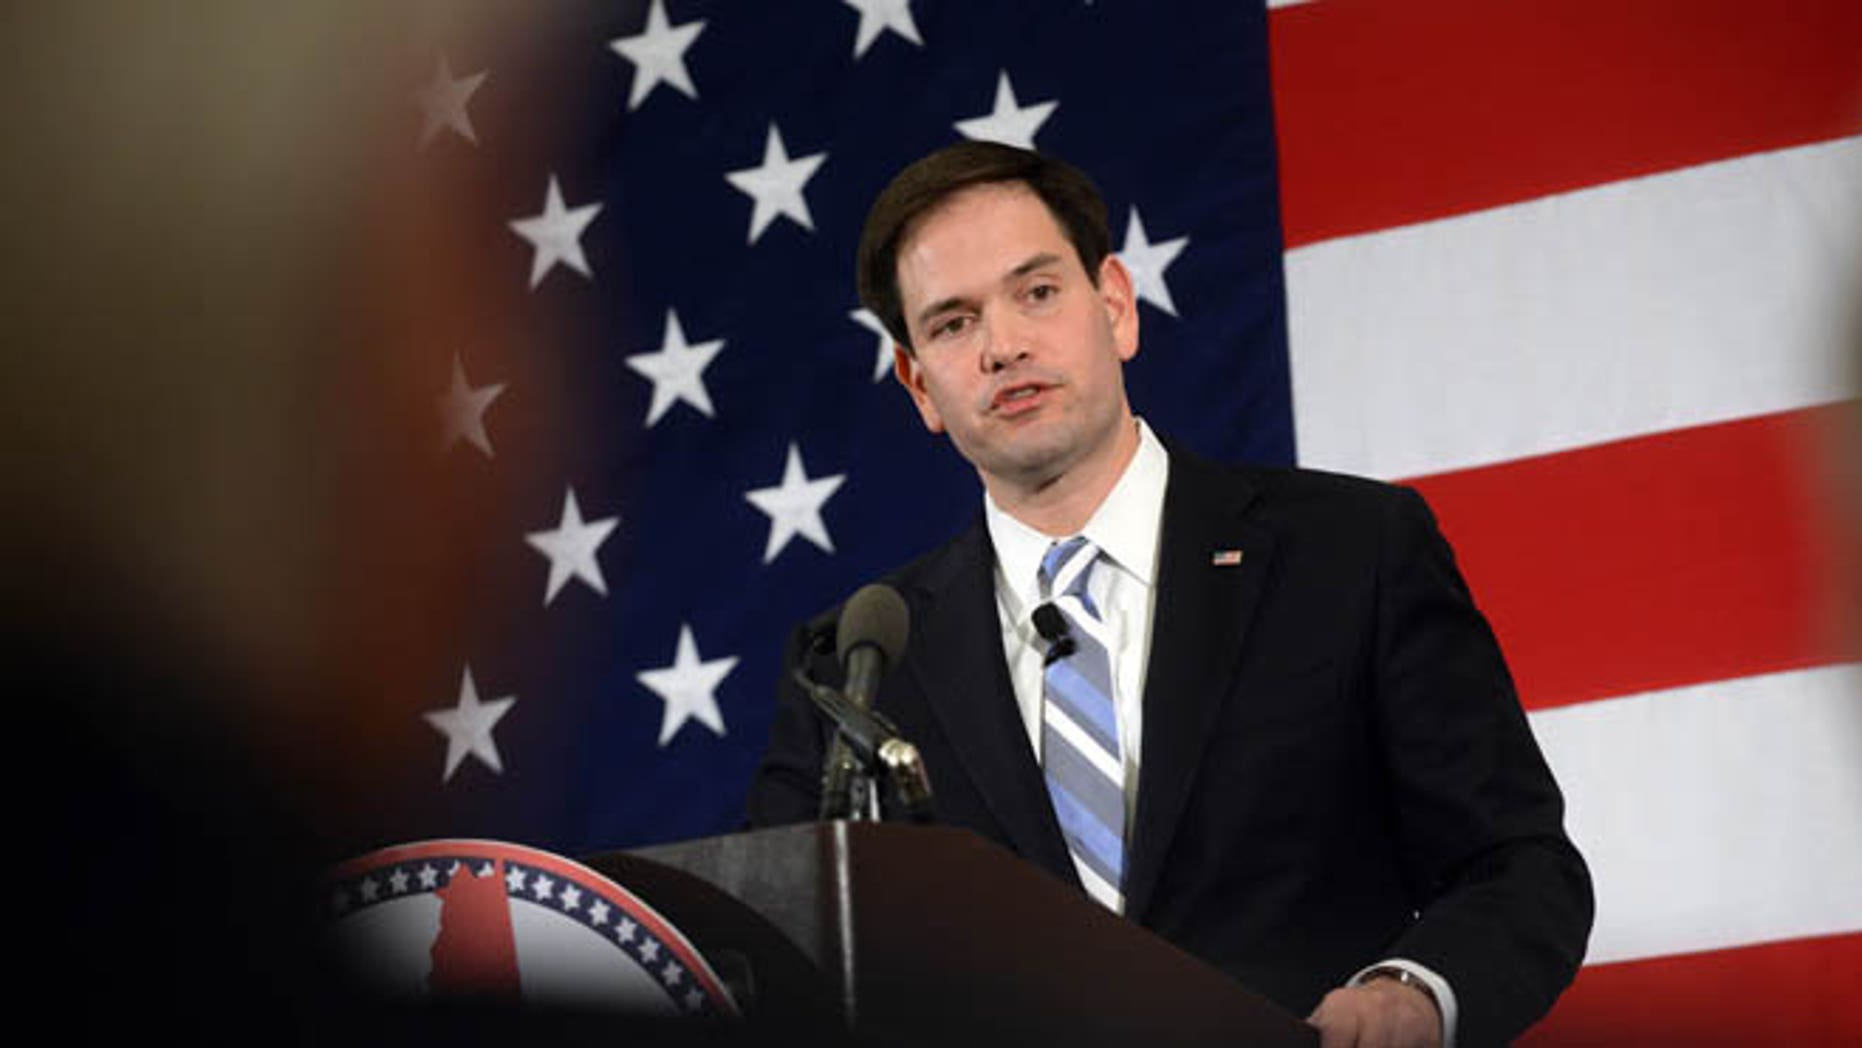 NASHUA, NH - APRIL 17: Republican presidential candidate Sen. Marco Rubio (R-FL) speaks at the First in the Nation Republican Leadership Summit April 17, 2015 in Nashua, New Hampshire. The Summit  brought together local and national Republicans and was attended by all the Republicans candidates as well as those eyeing a run for the nomination. (Photo by Darren McCollester/Getty Images)